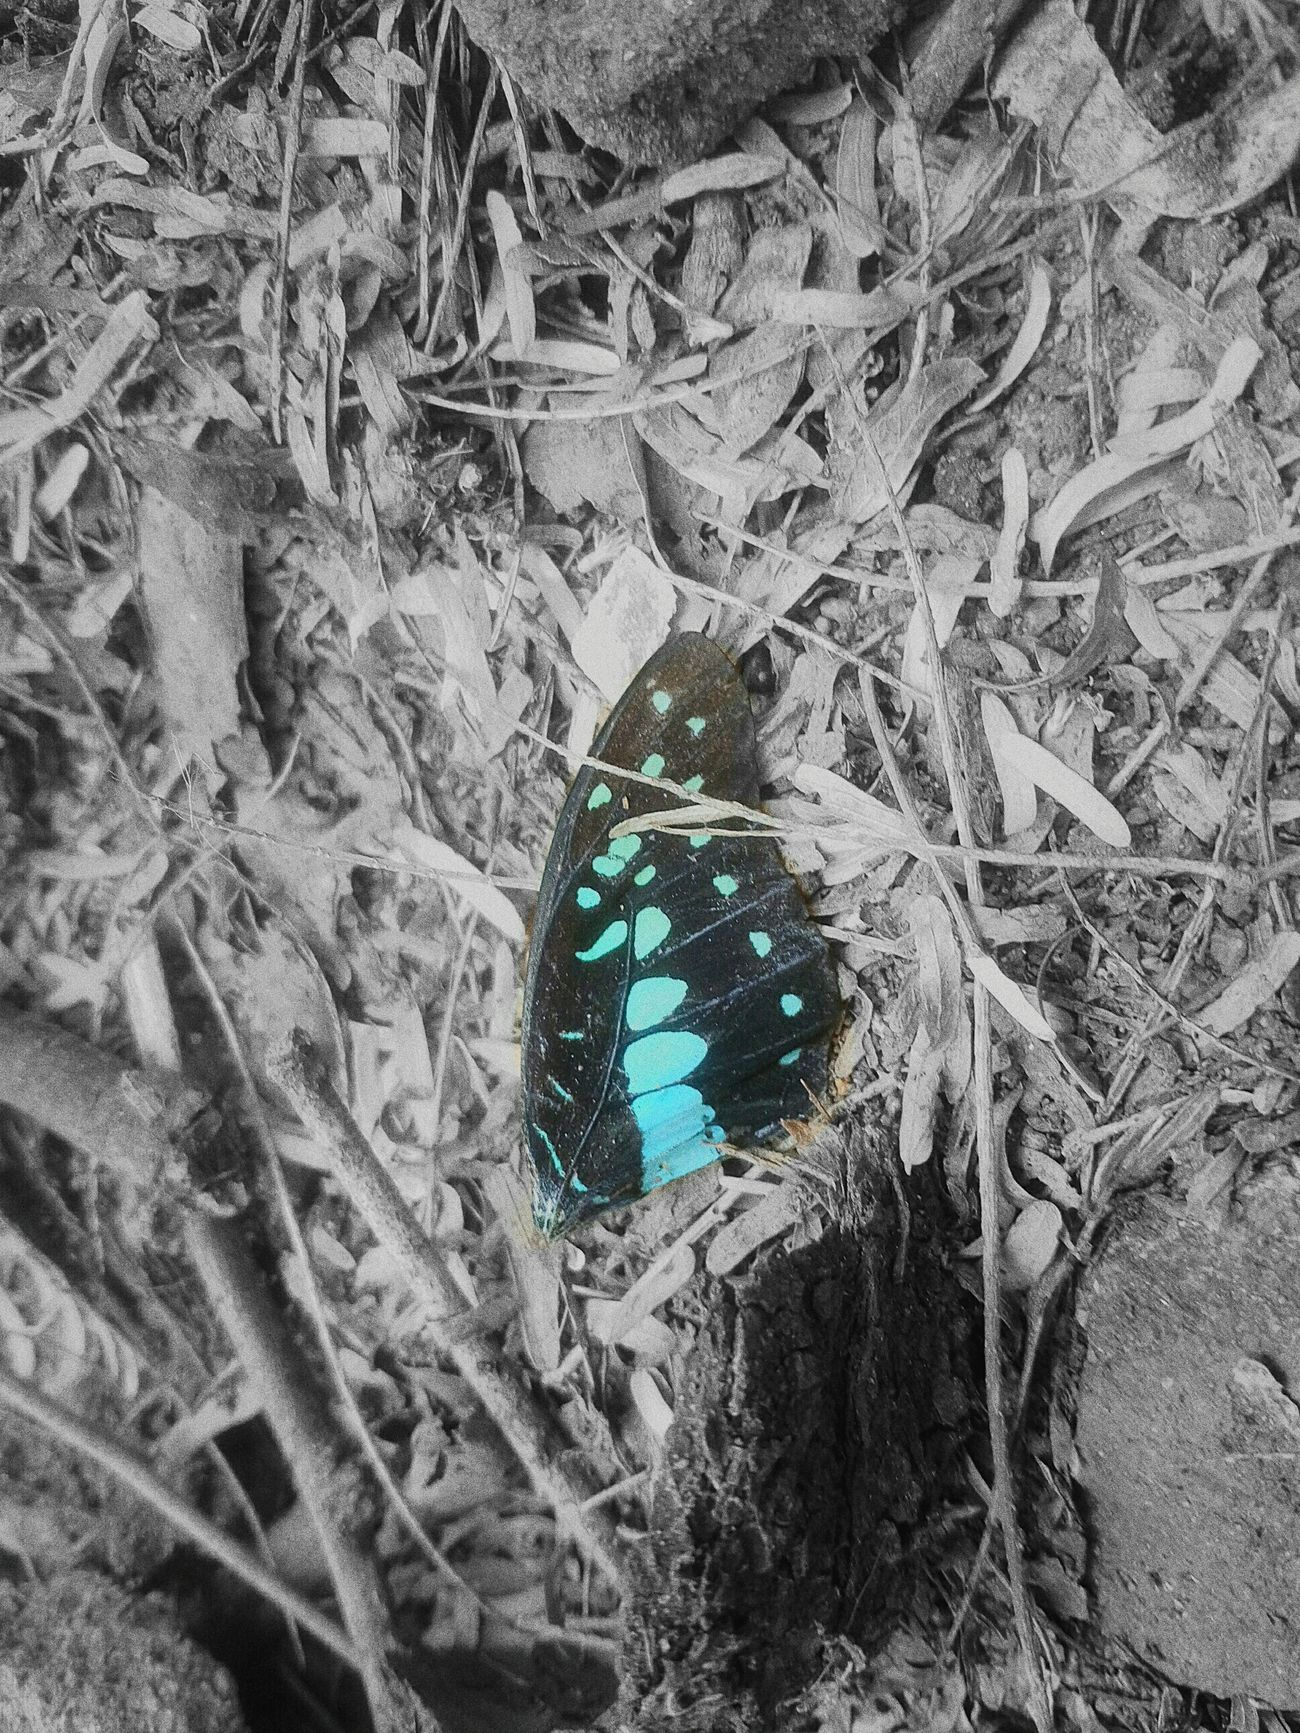 Butterfly ❤ Button Up Butterfly Wings Single Wing No People Blue Close-up Beauty In Nature Nature Cruality Crual World 😍😌😊 Sadness Sadness... Reality Death Death And Life 😱dead butterfly's wing, 😇Too blue but not sky, 🌏🌎🌍cruality is reality,😈 too stoned n jungle to pass by...